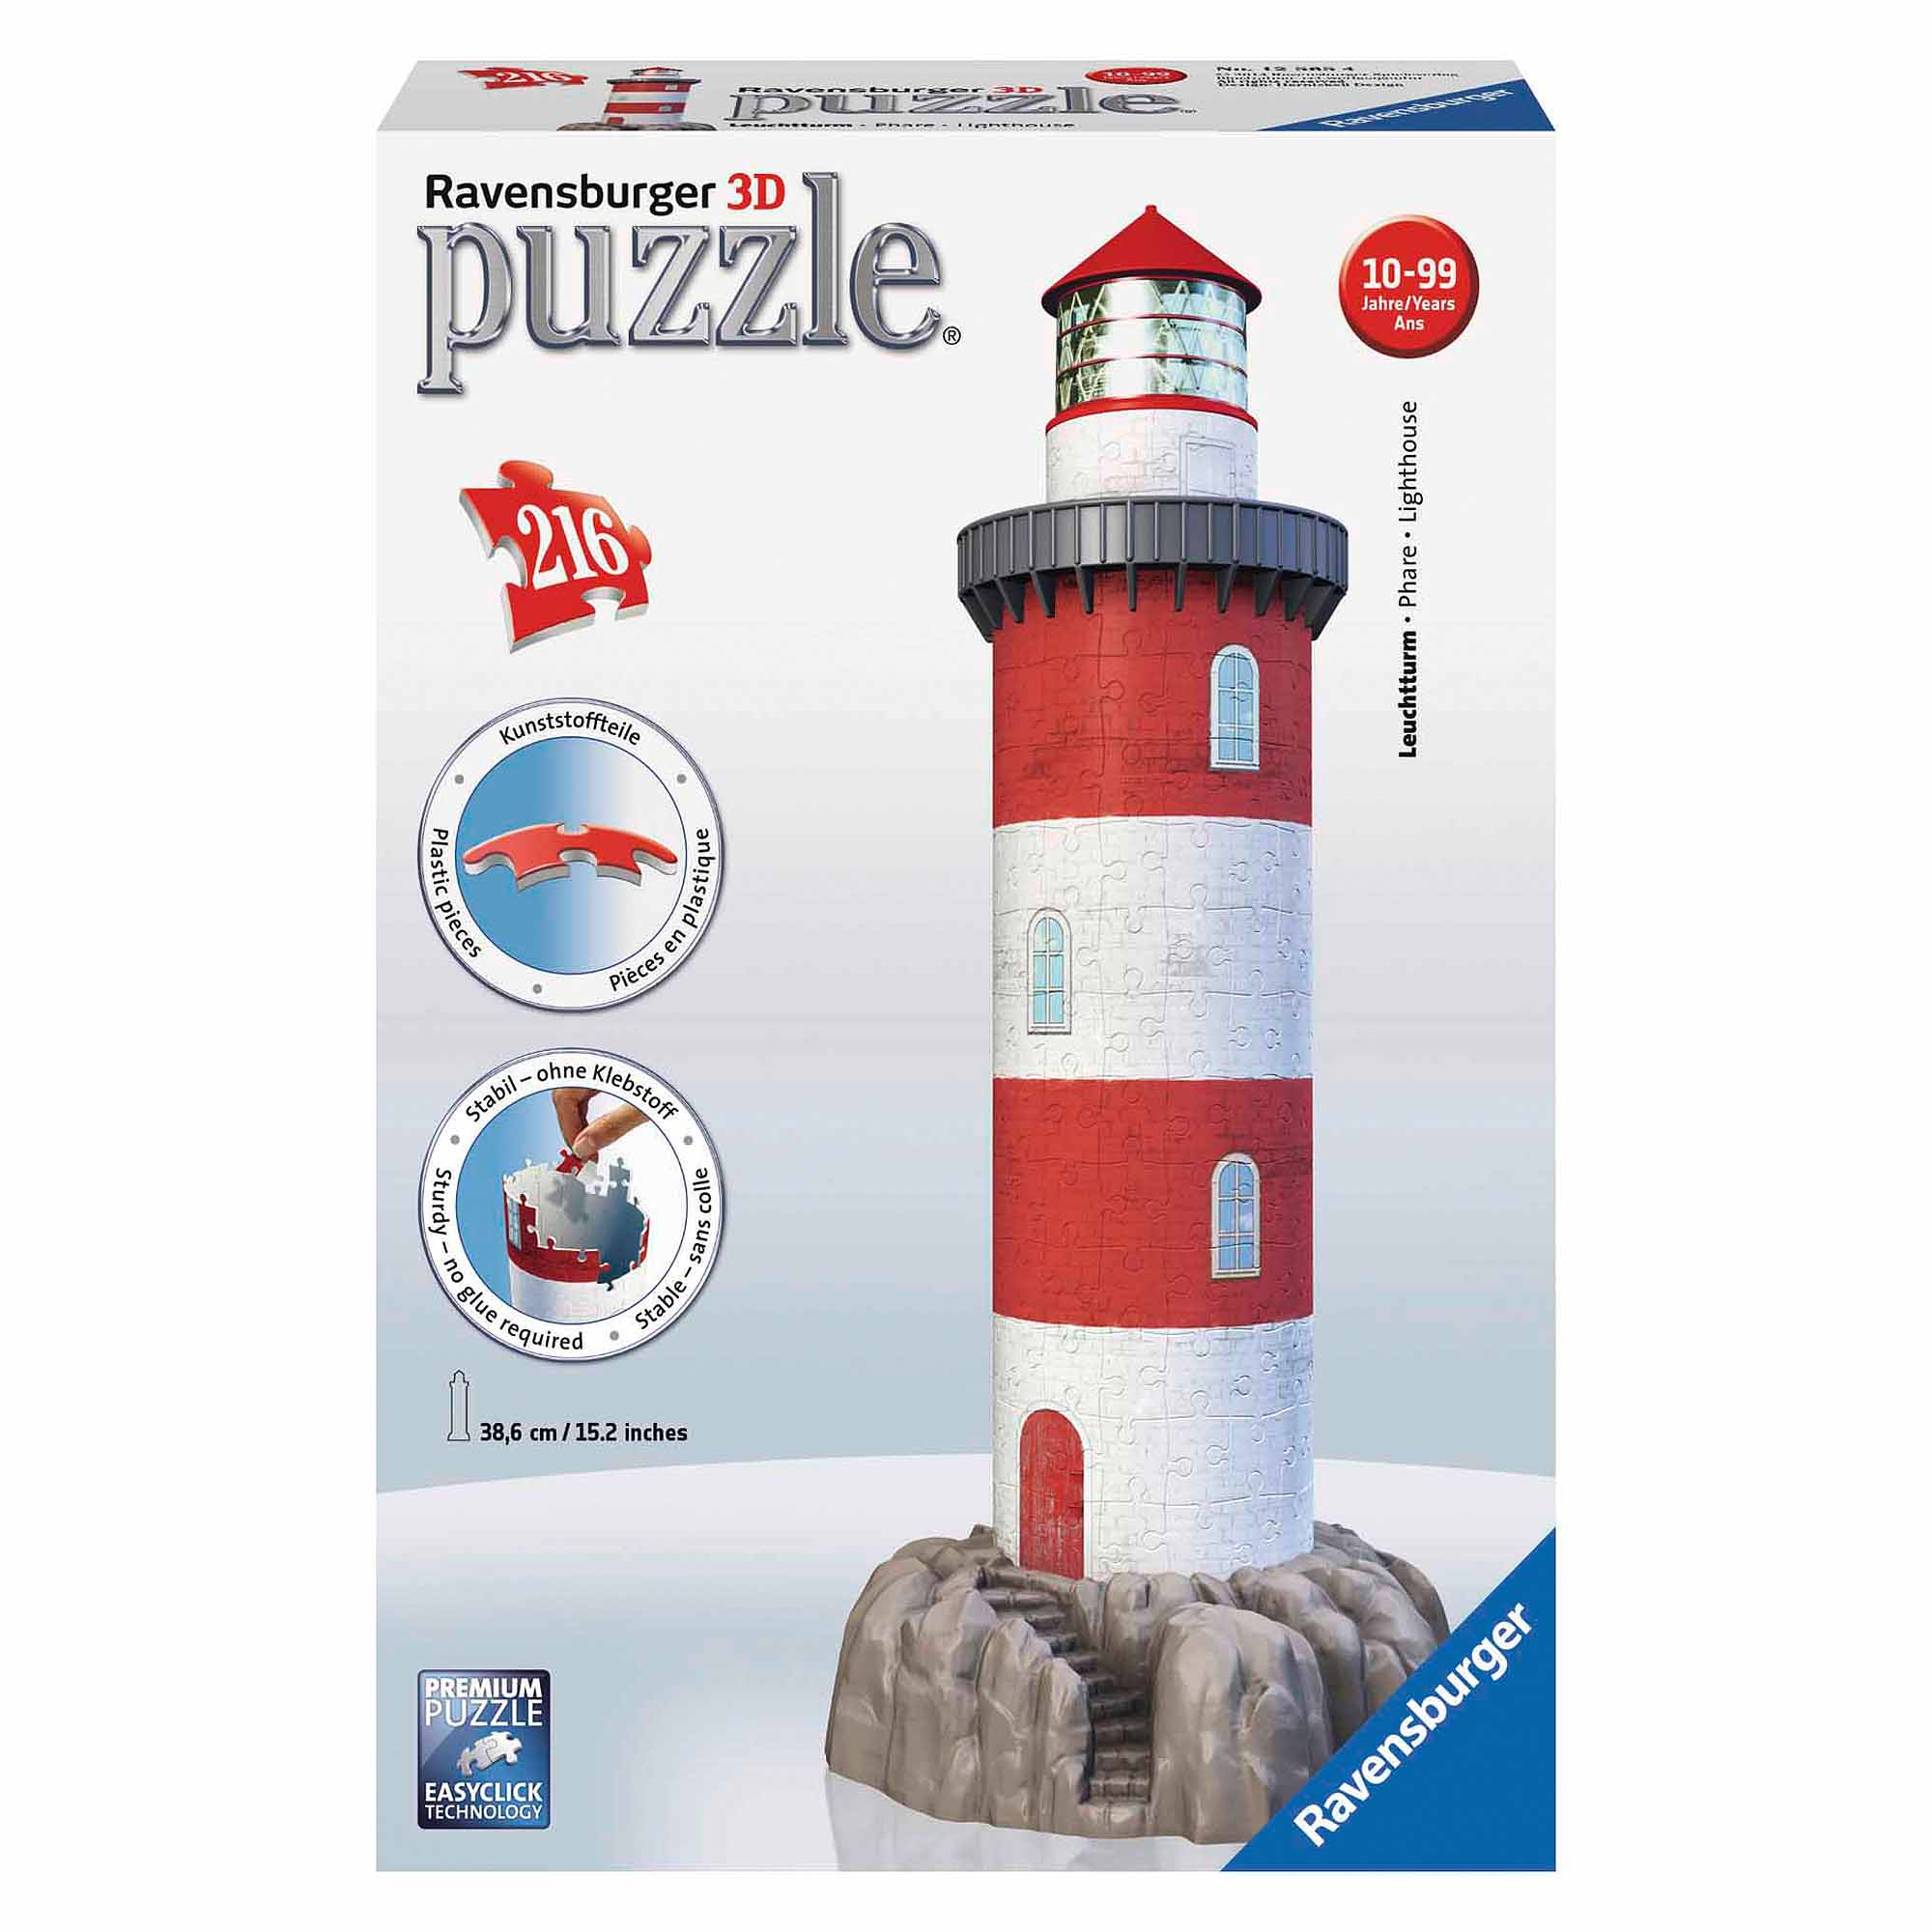 Coastal Lighthouse 3D Puzzle, 216 Pieces